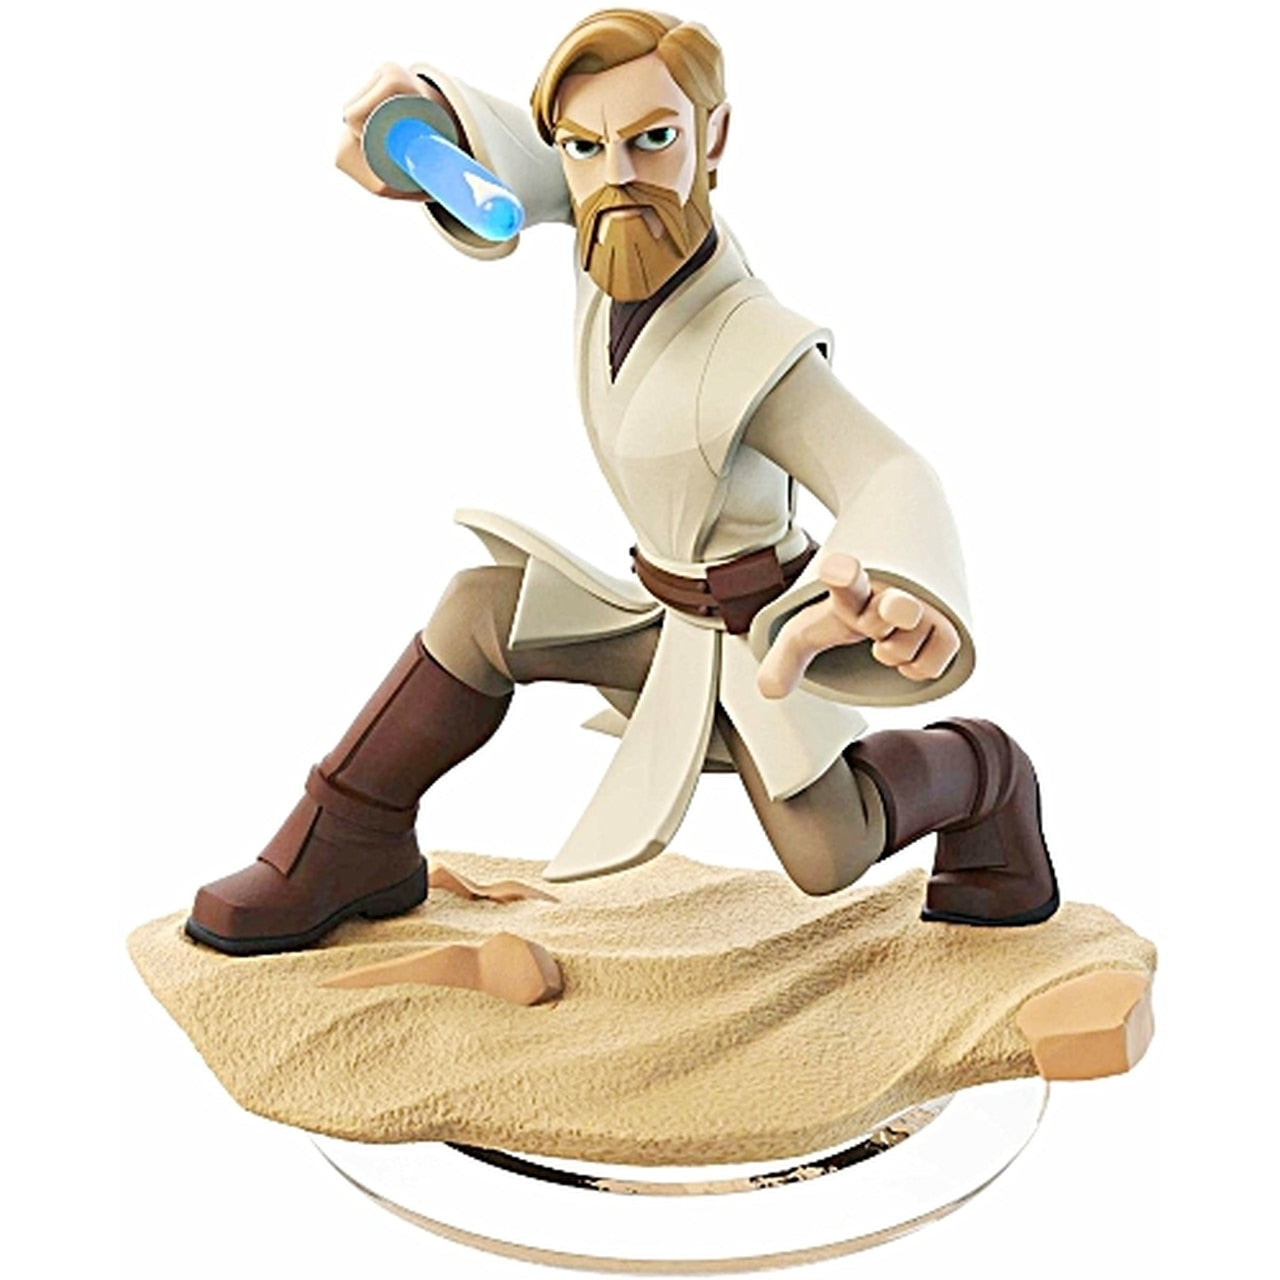 Disney Infinity 3.0 Edition - Star Wars Obi-Wan Kenobi Figure